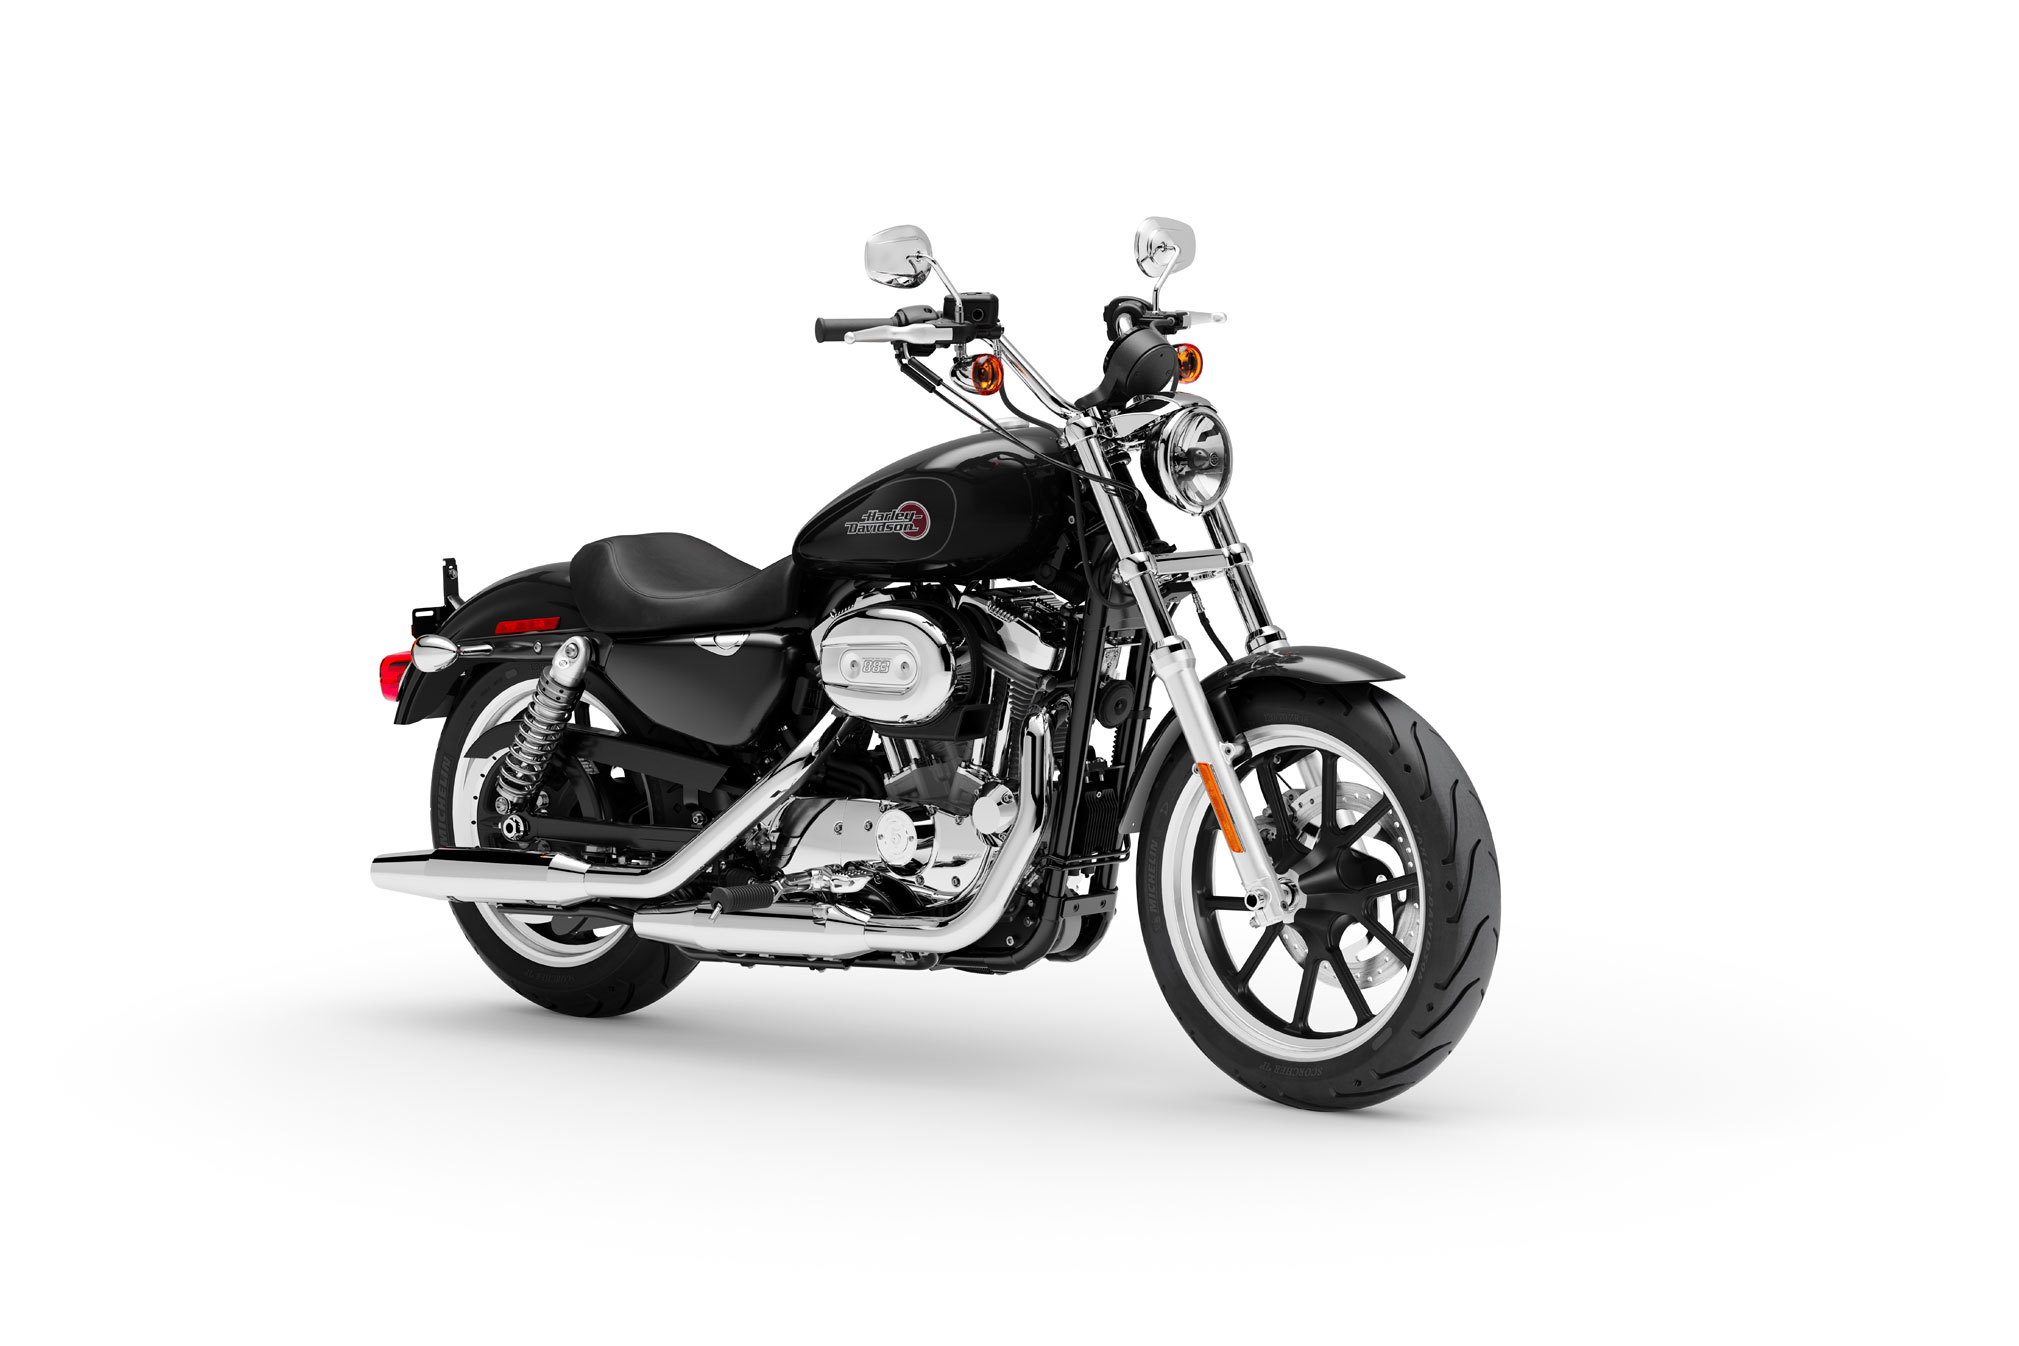 2019 Harley Davidson Fxdr 114 Guide � Total Motorcycle: 2019 Harley-Davidson SuperLow Guide • Total Motorcycle